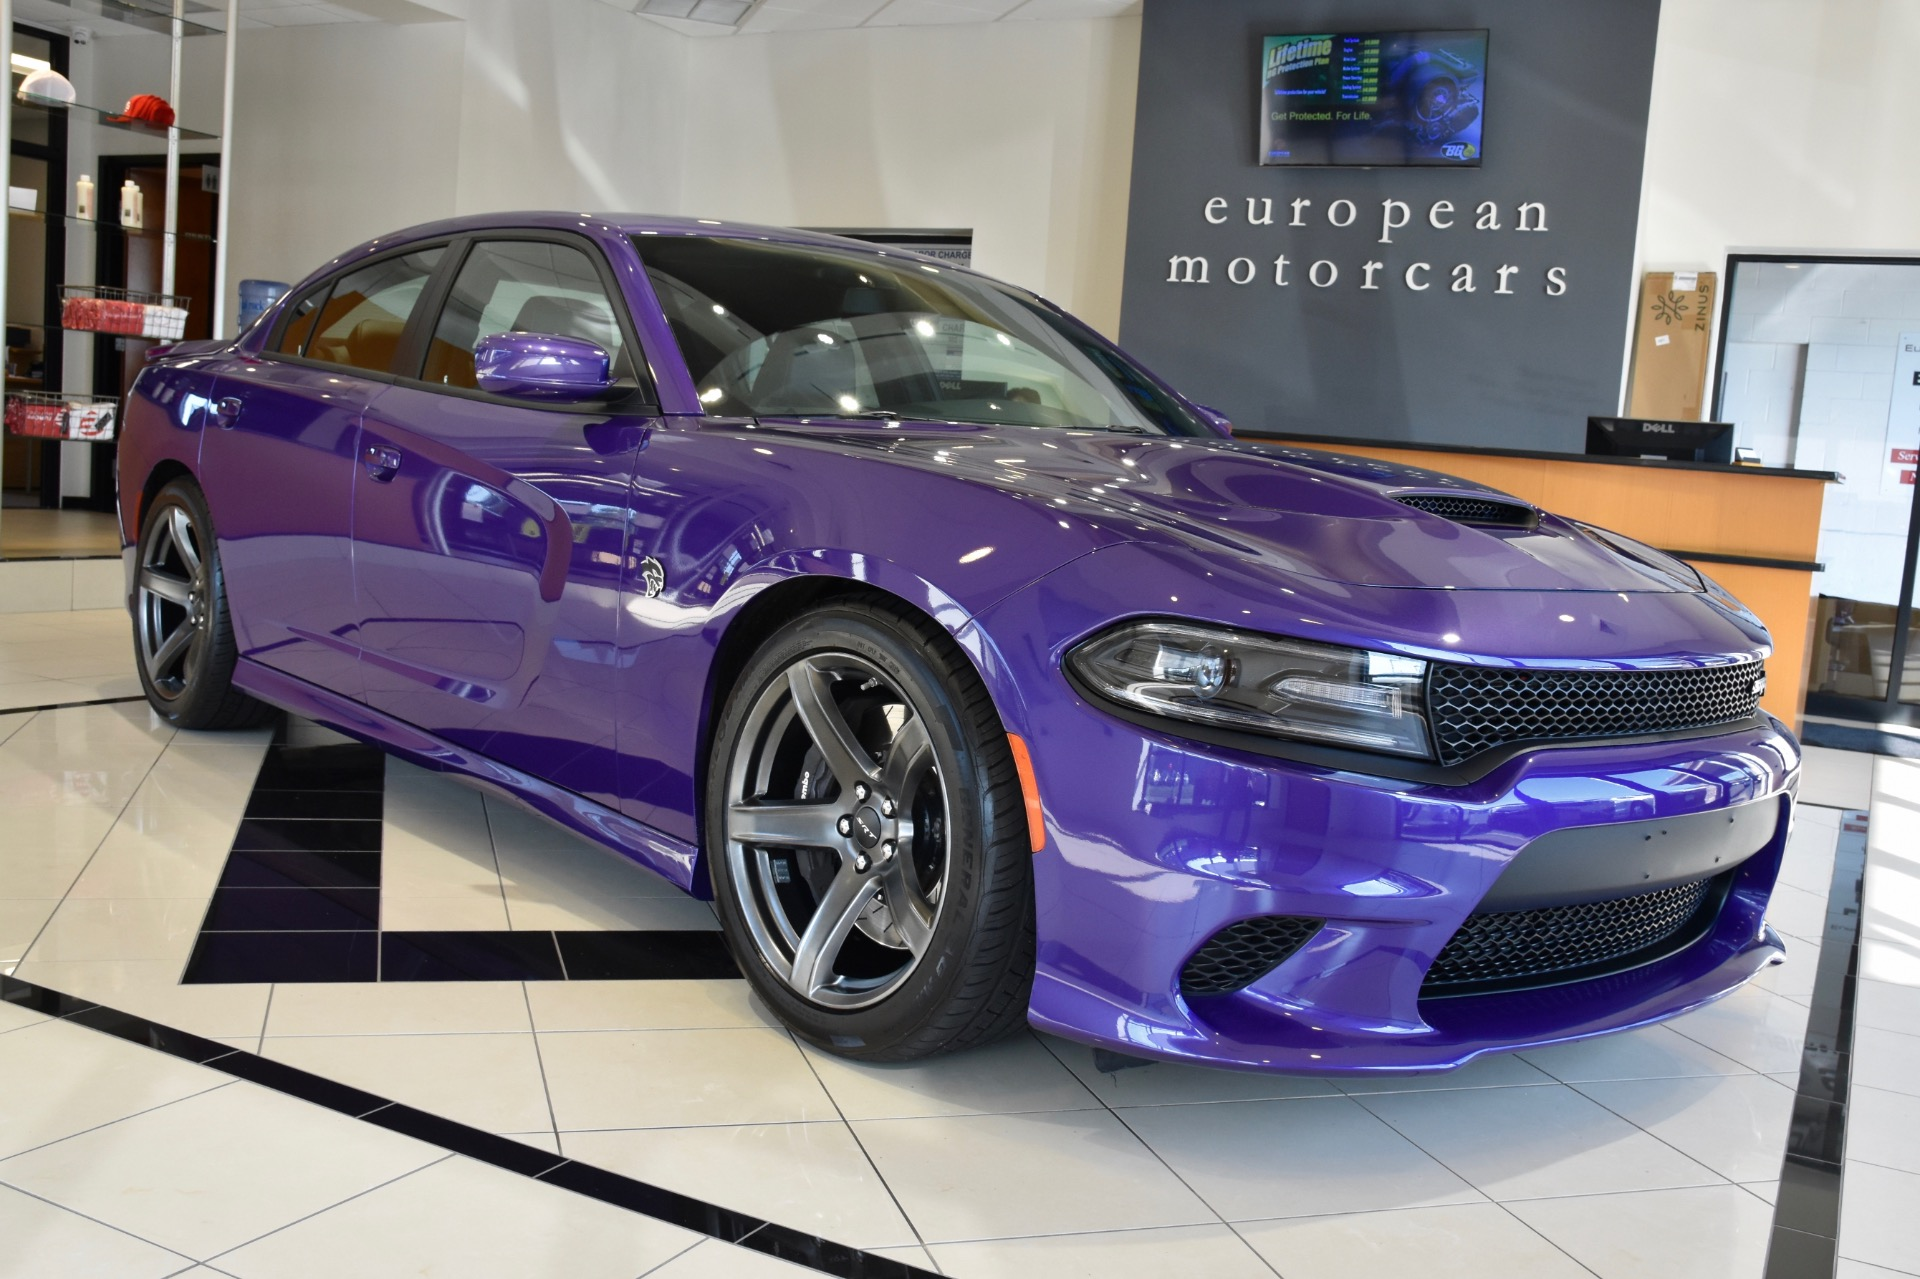 dodge hellcat for sale ct 2018 Dodge Charger SRT Hellcat for sale near Middletown